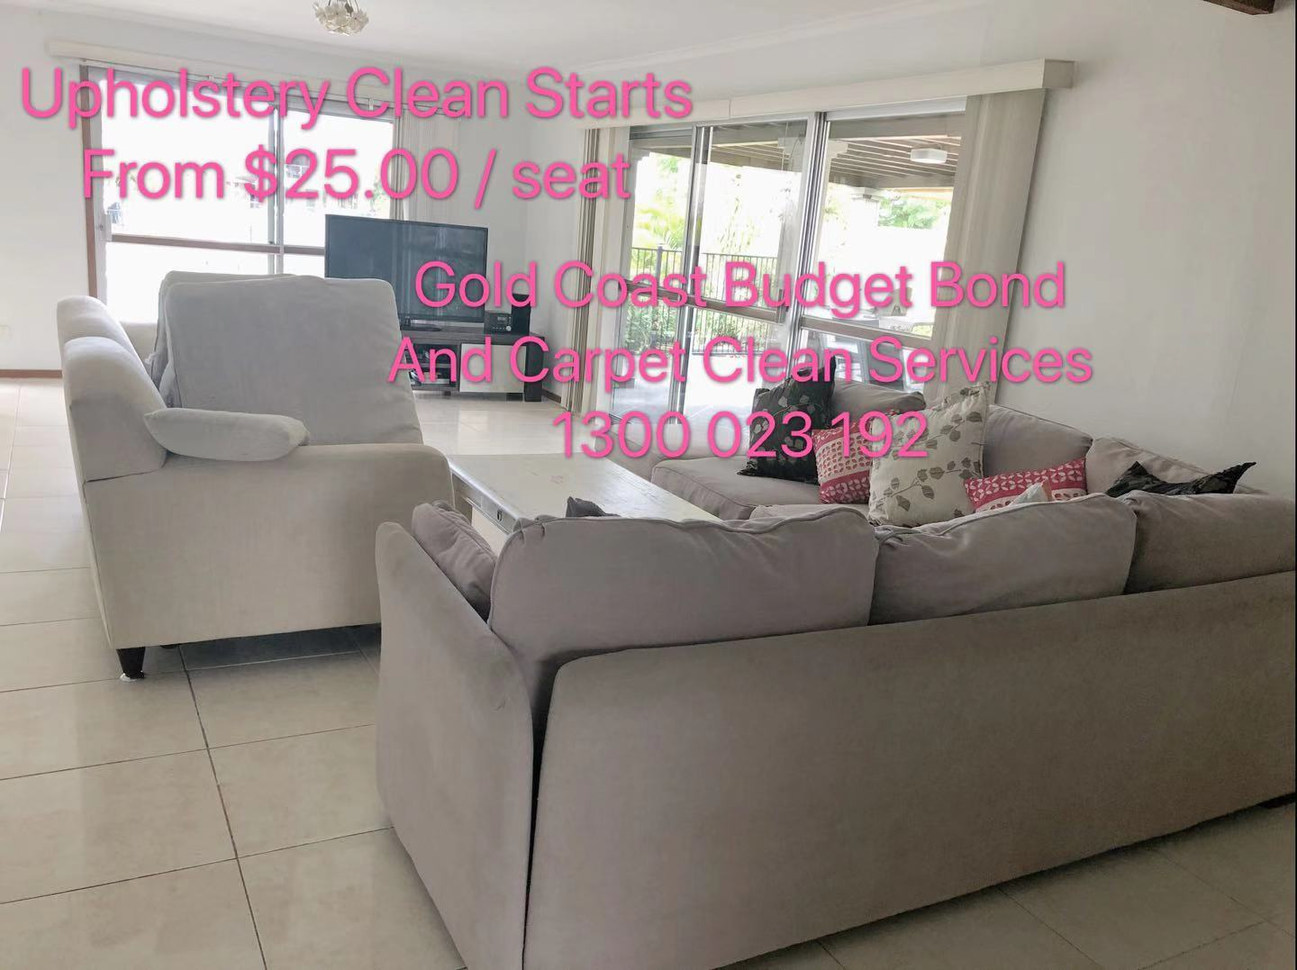 upholstery clean service.jpg